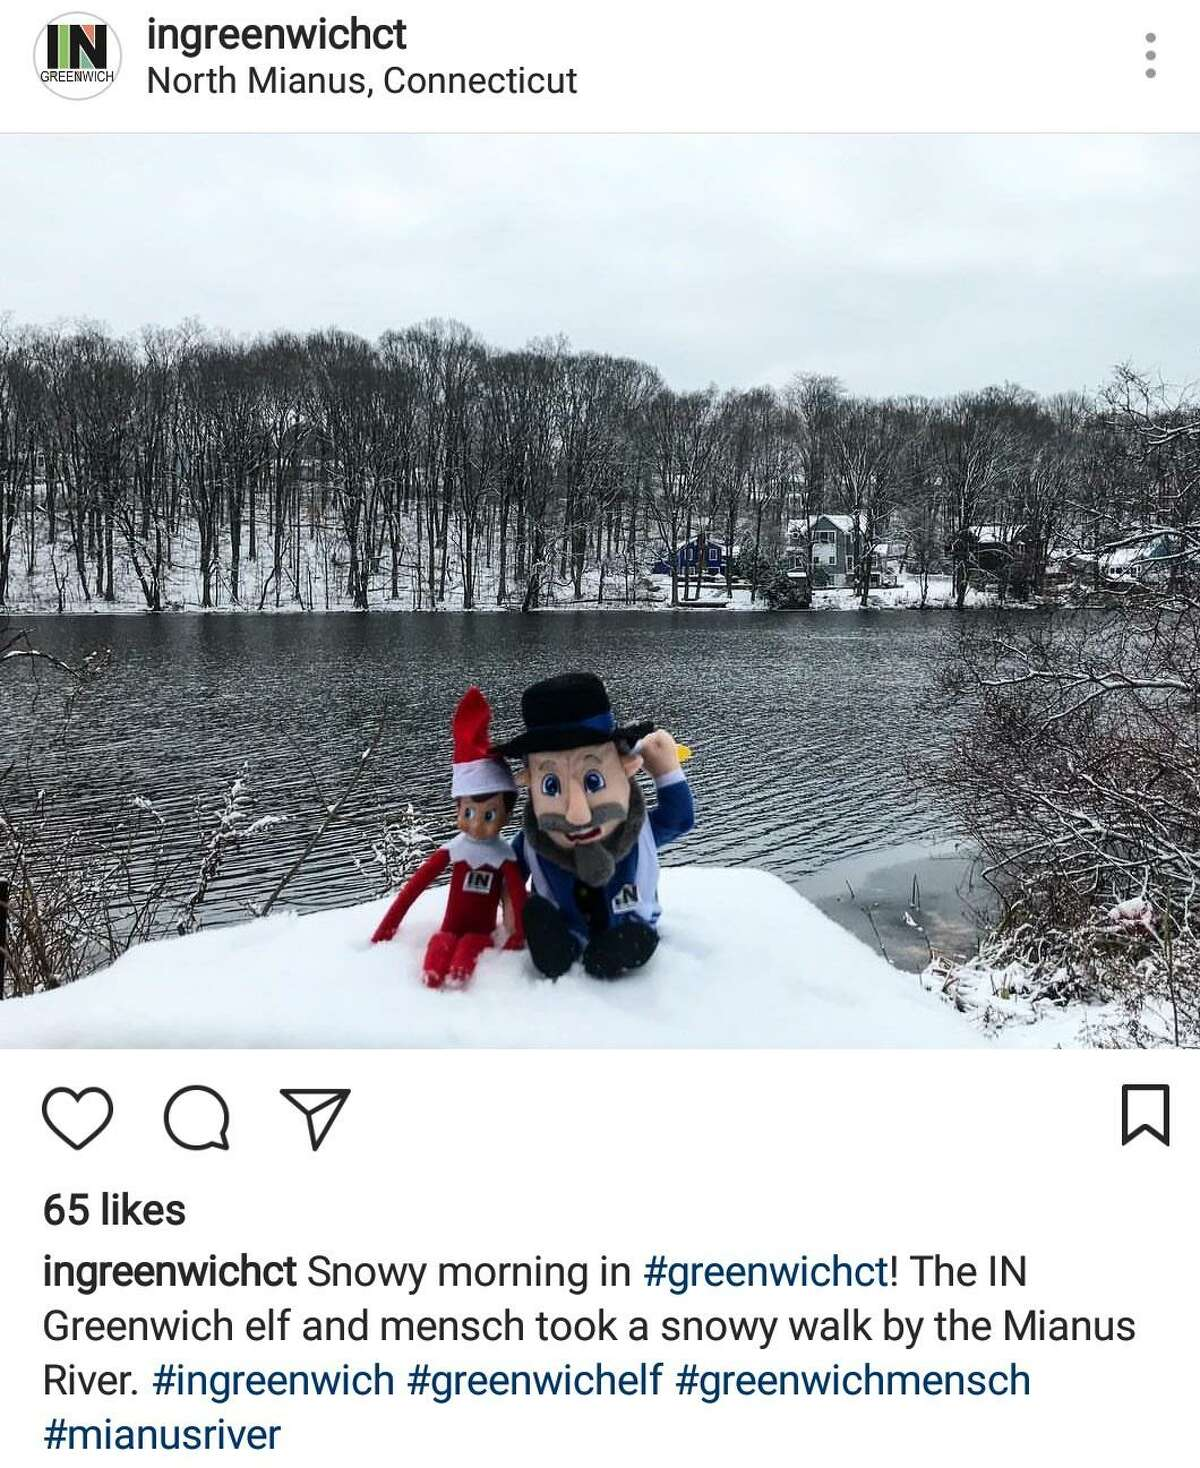 Vin the IN Greenwich elf and Bin the IN Greenwich mensch had a photo shoot along the Mianus River by North Mianus on Dec. 14, 2017.